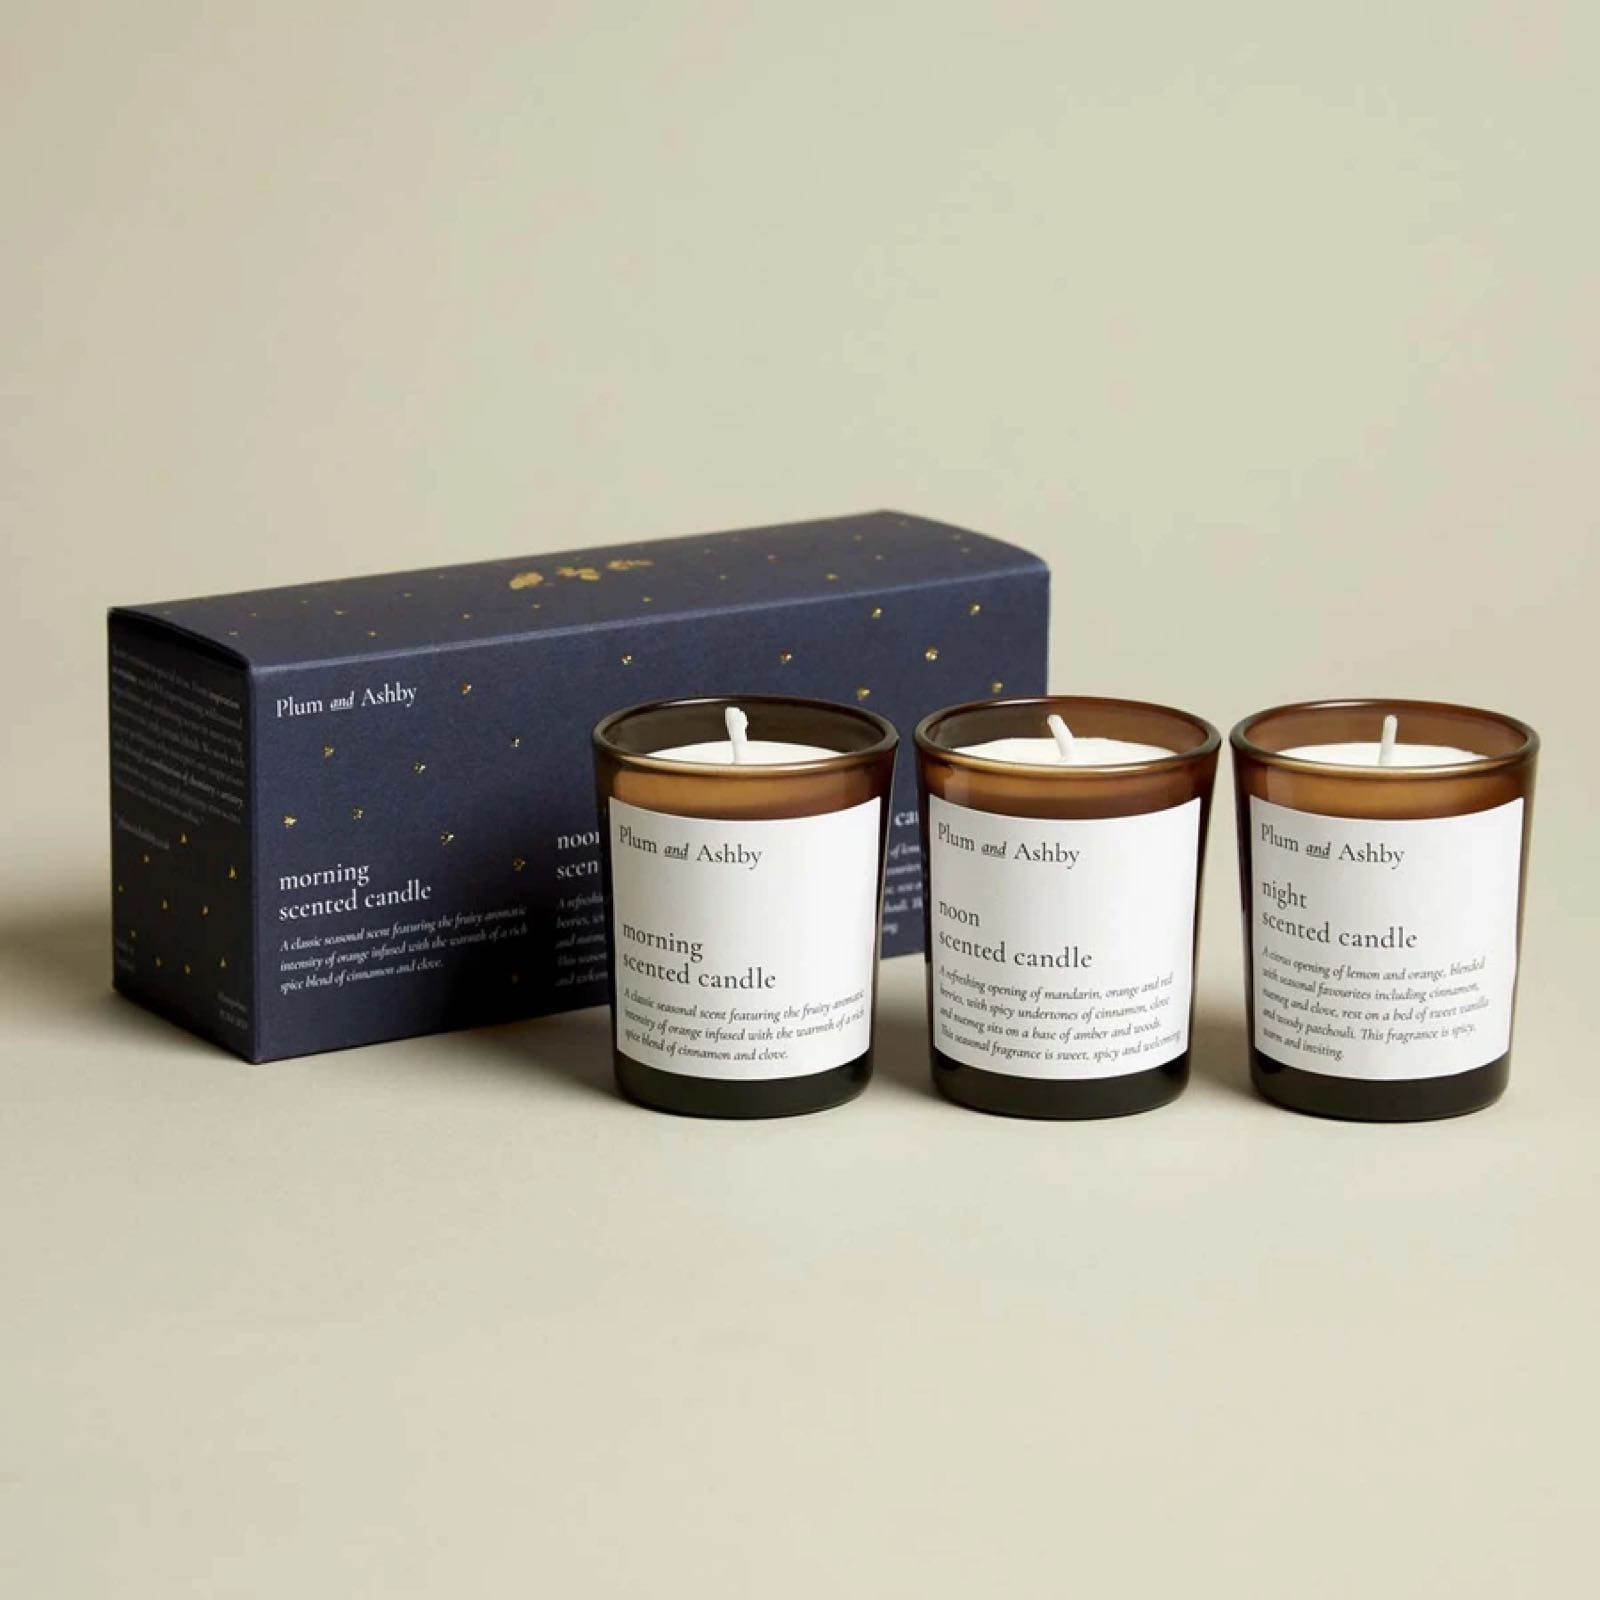 Plum & Ashby Christmas votive candle gift set- includes x1 pink peppercorn and nutmeg candle x1 fireside embers candle and x1 clove and nutmeg candle presented in a gift box